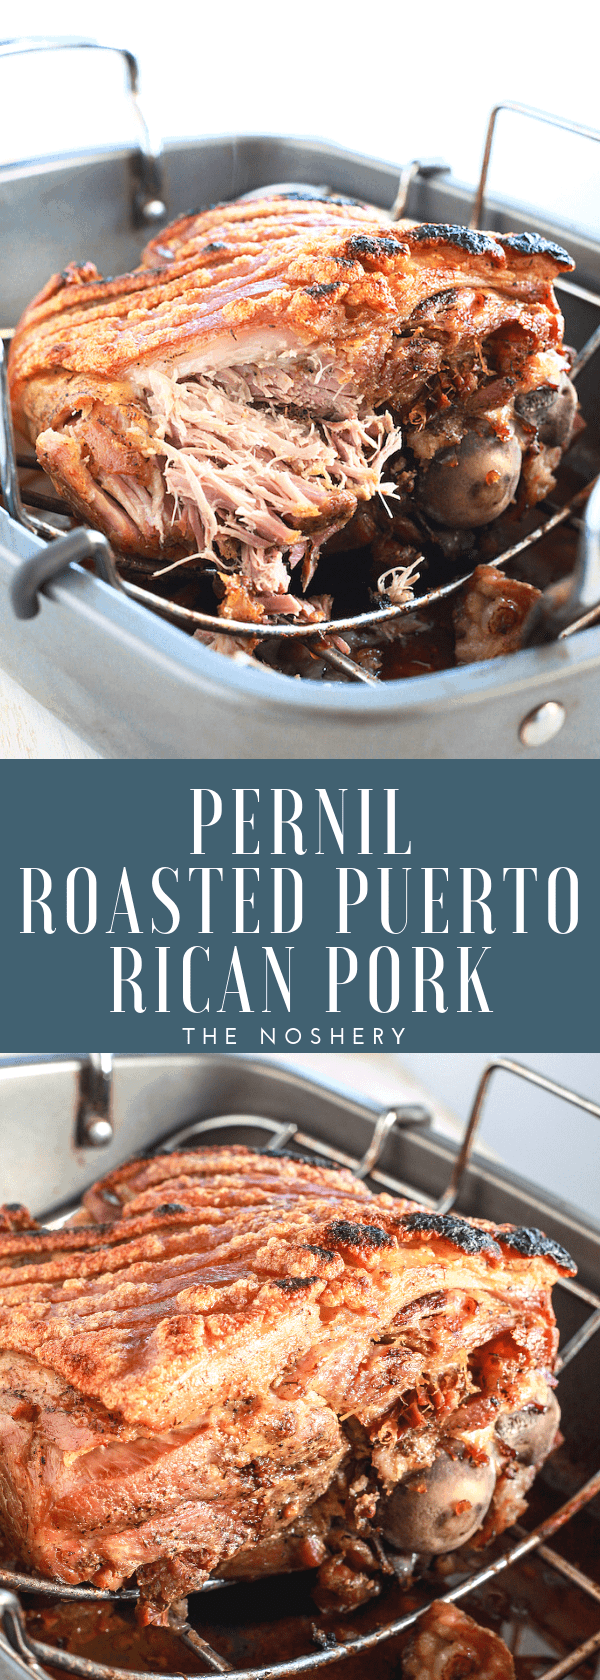 Pernil - Roasted Puerto Rican Pork | Traditionally pernil is served during the holidays but it can be enjoyed year round. Pernil is a slow roasted pork shoulder with tender meat and crispy skin. | The Noshery